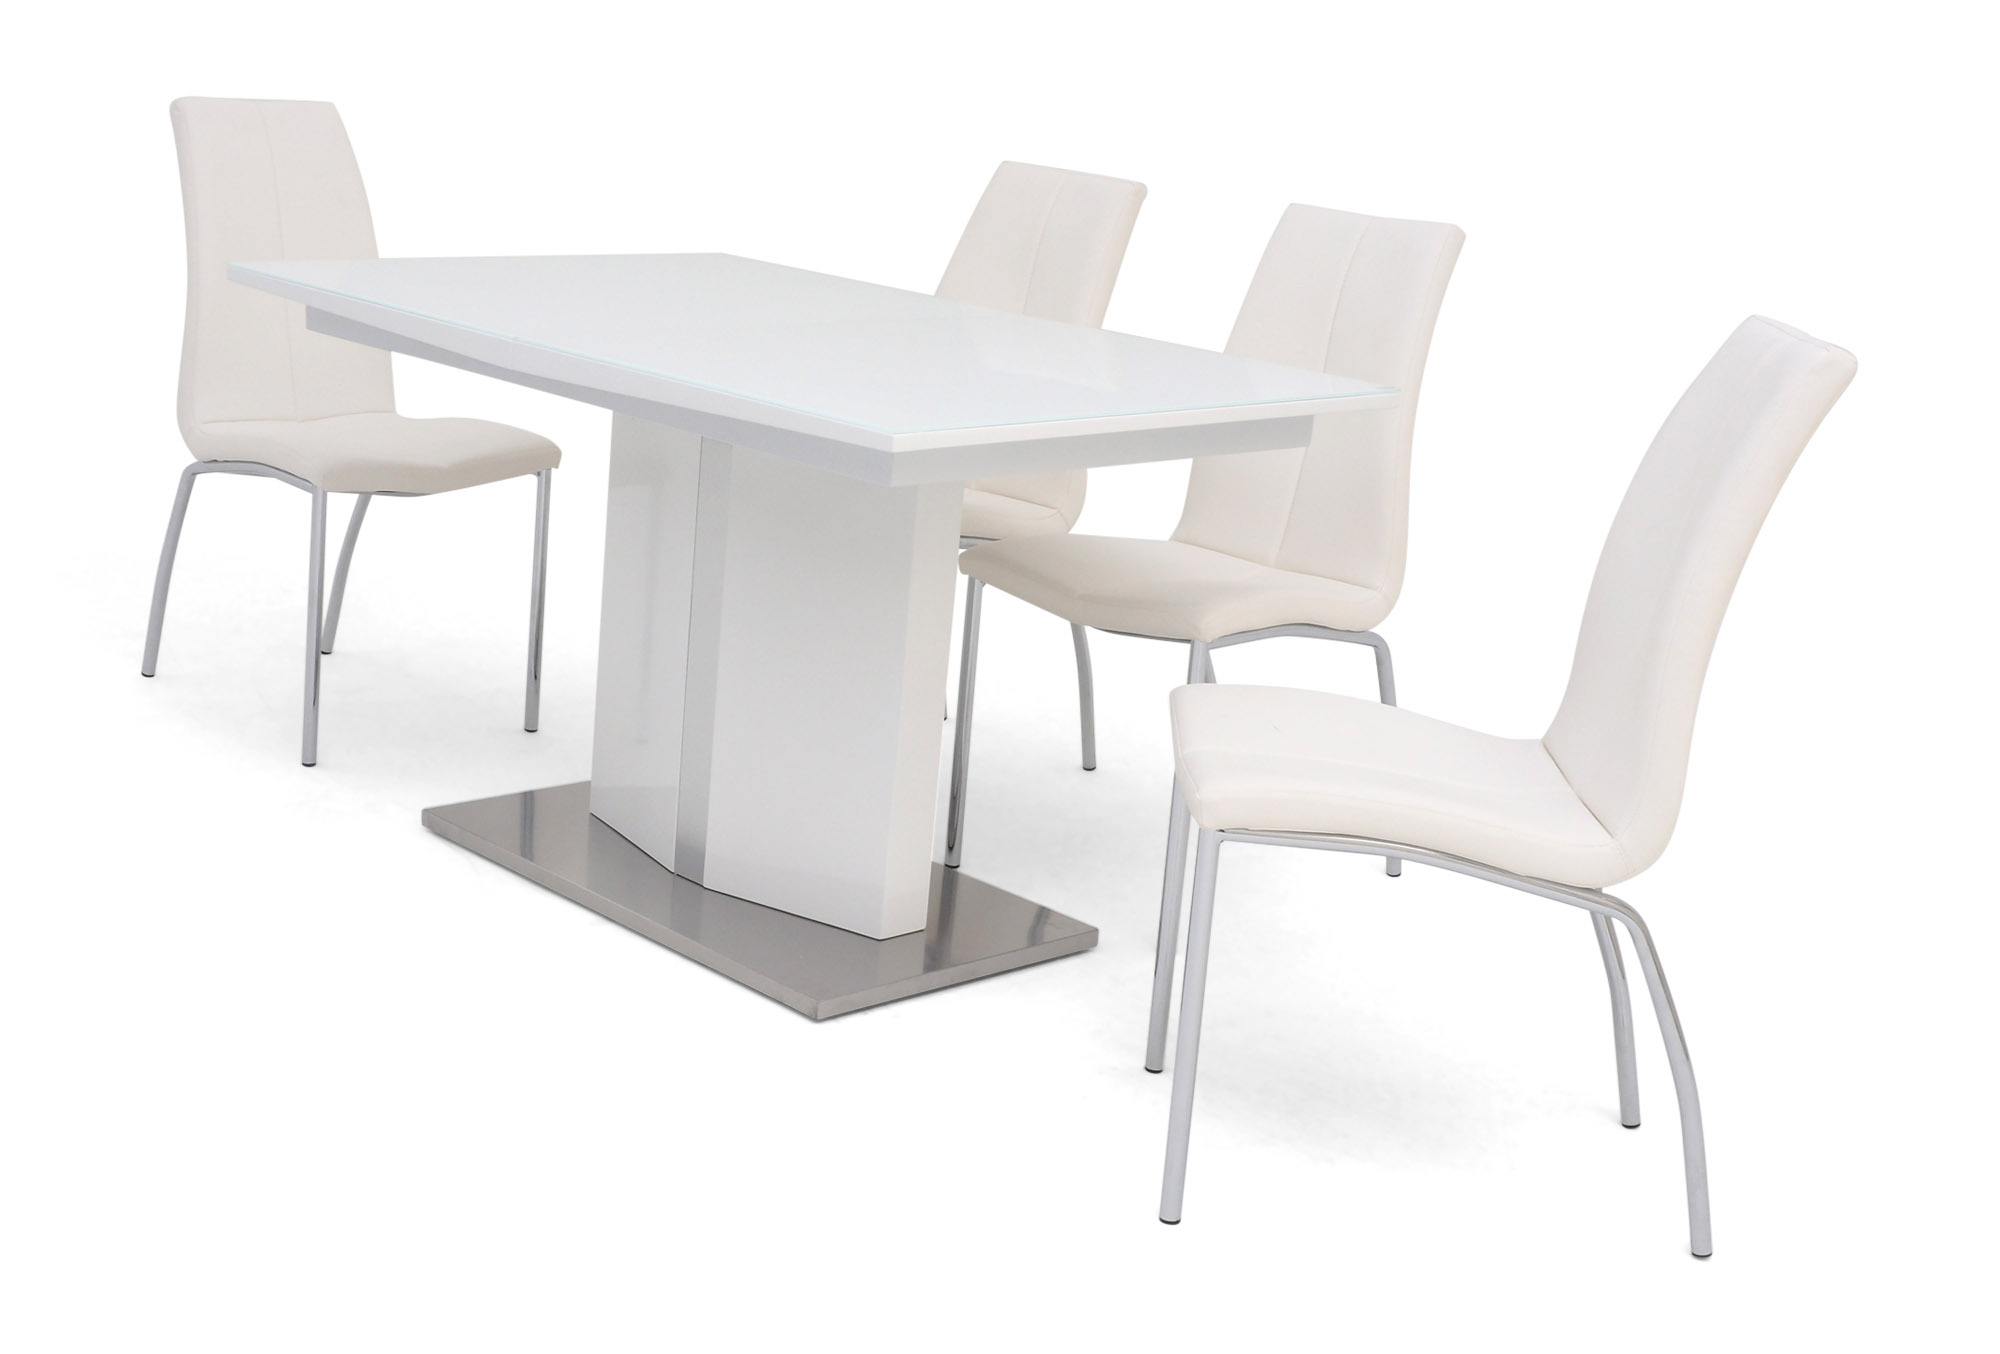 https://www.firstfurniture.co.uk/pub/media/catalog/product/s/i/silvio_white_table_ava_chair_white_close_1_side_2.jpg